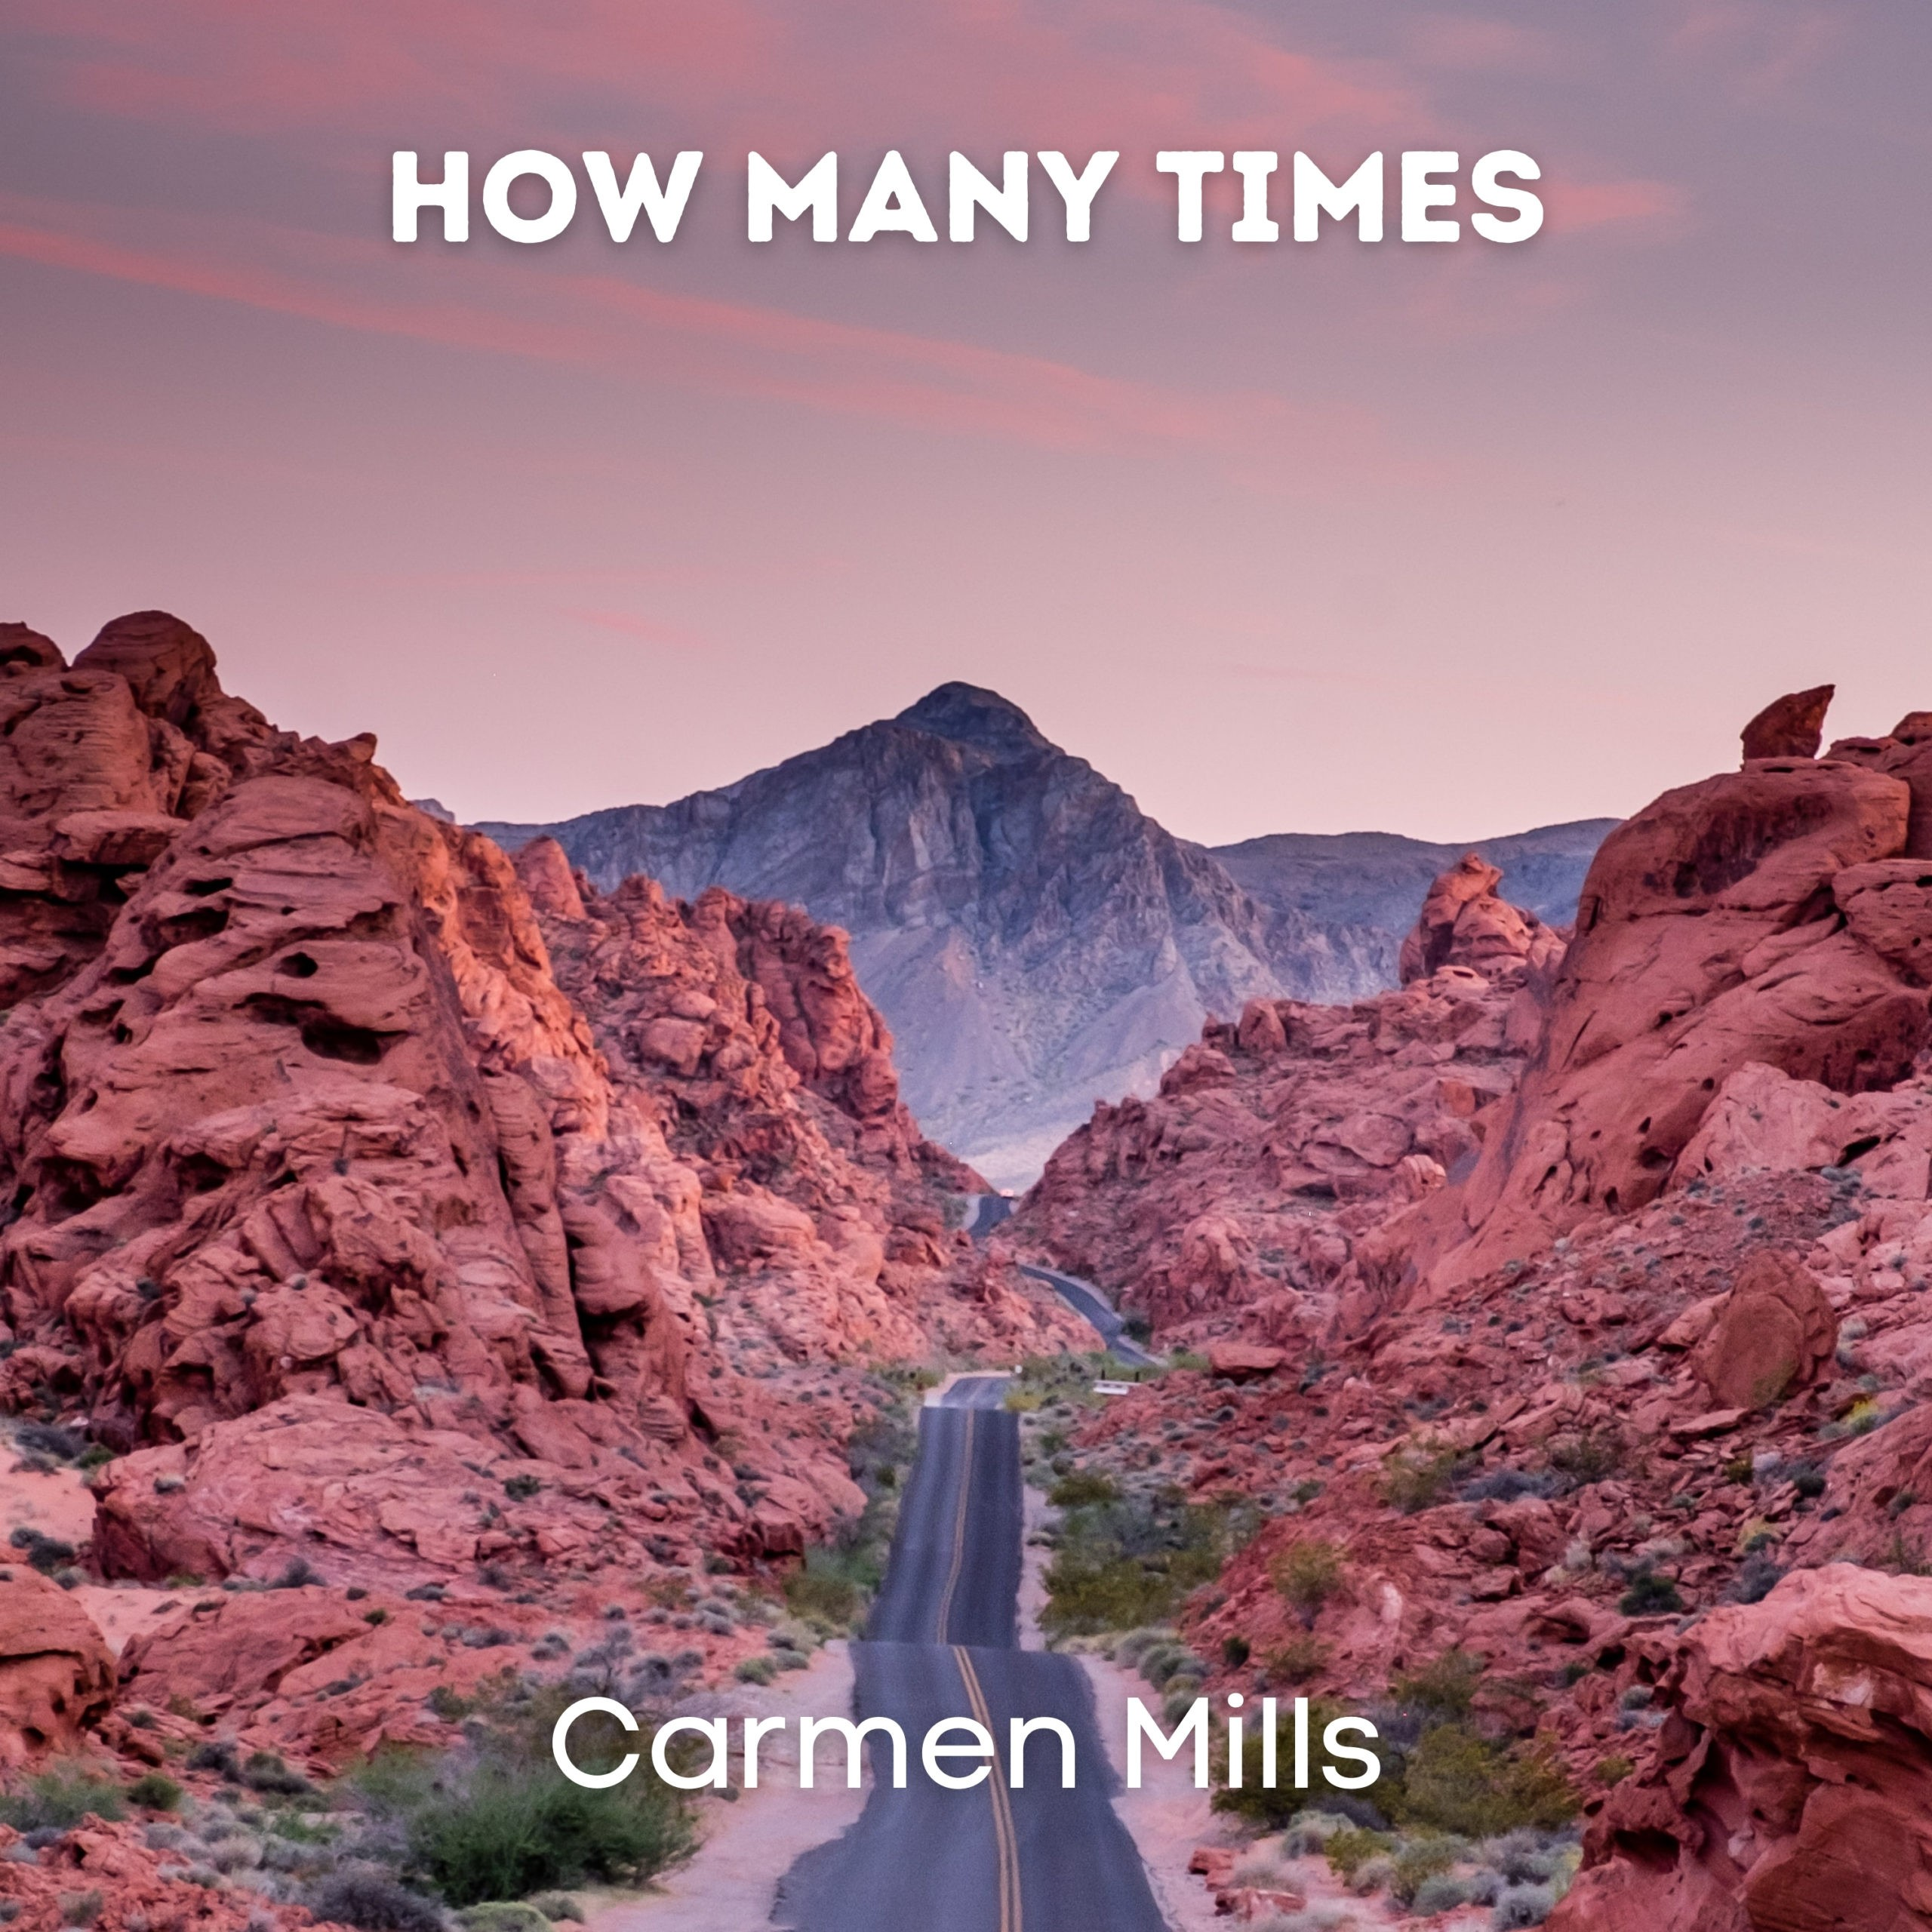 NEW SINGLE OUT TODAY FROM SINGER/SONGWRITER CARMEN MILLS